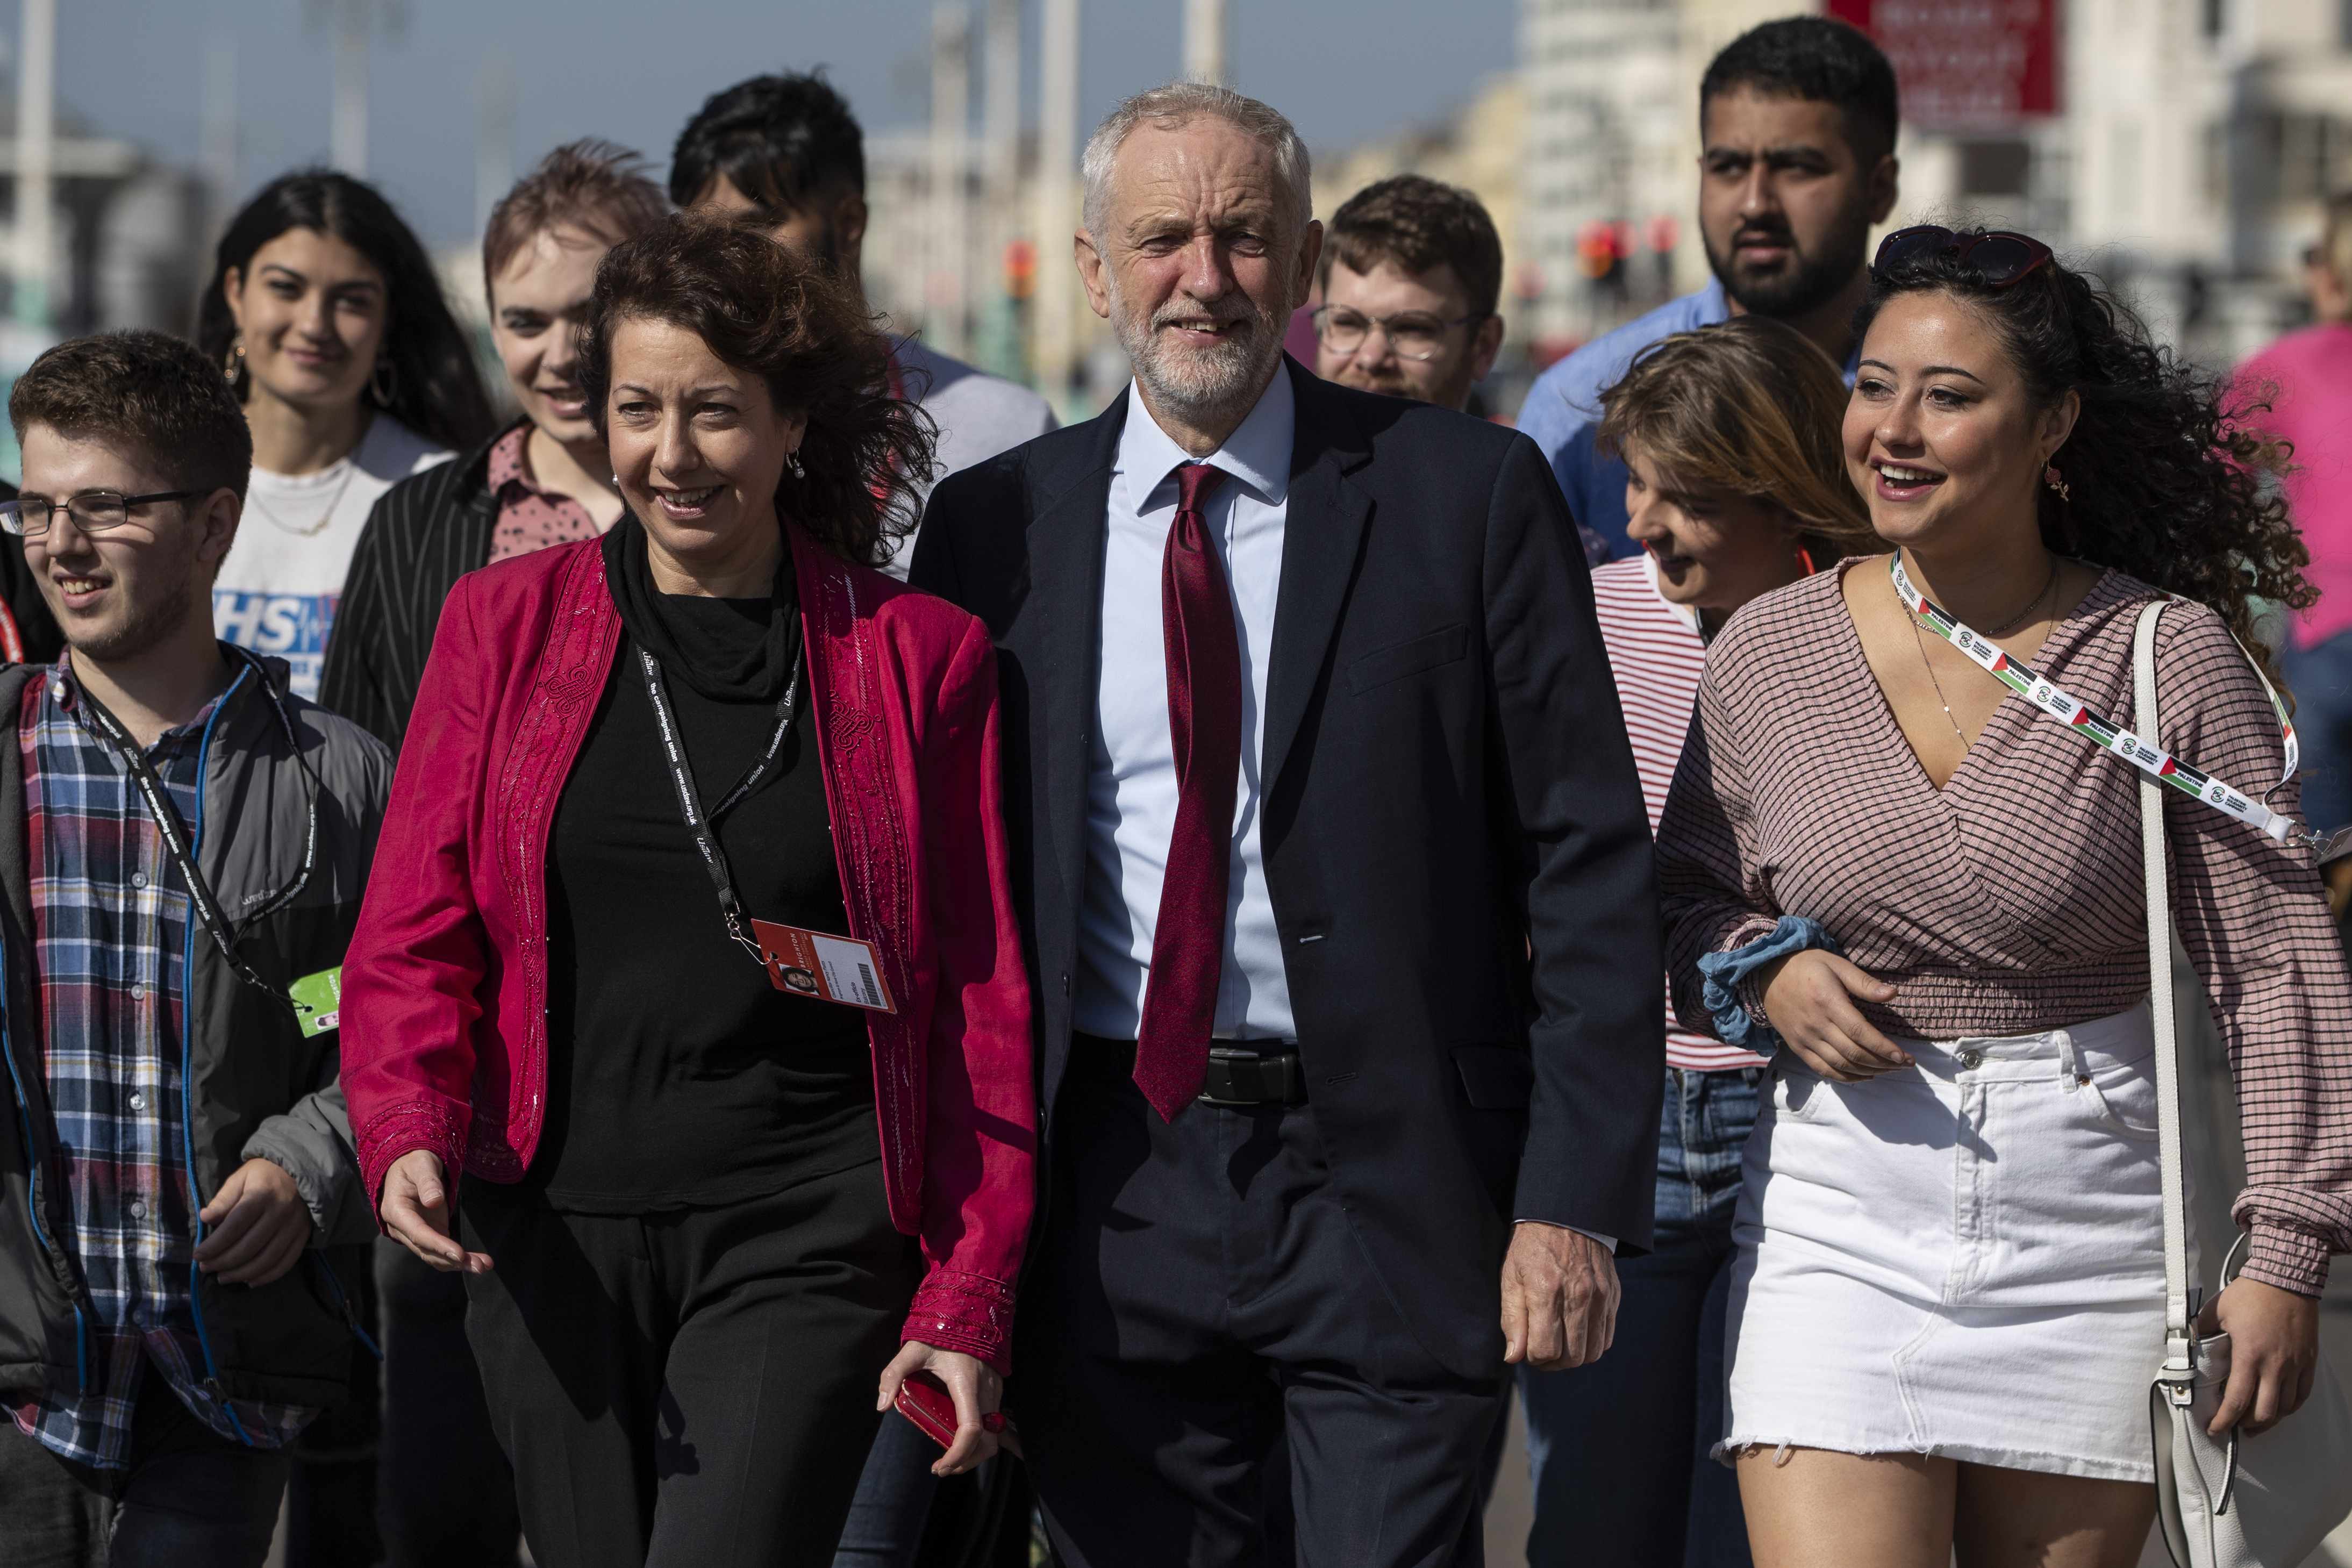 Labour leader, Jeremy Corbyn and Brighton Council leader, Nancy Platt walk with young party members along Brighton Promenade for a staged arrival picture ahead of the 2019 Labour Party Conference on September 19, 2019 in Brighton, England.